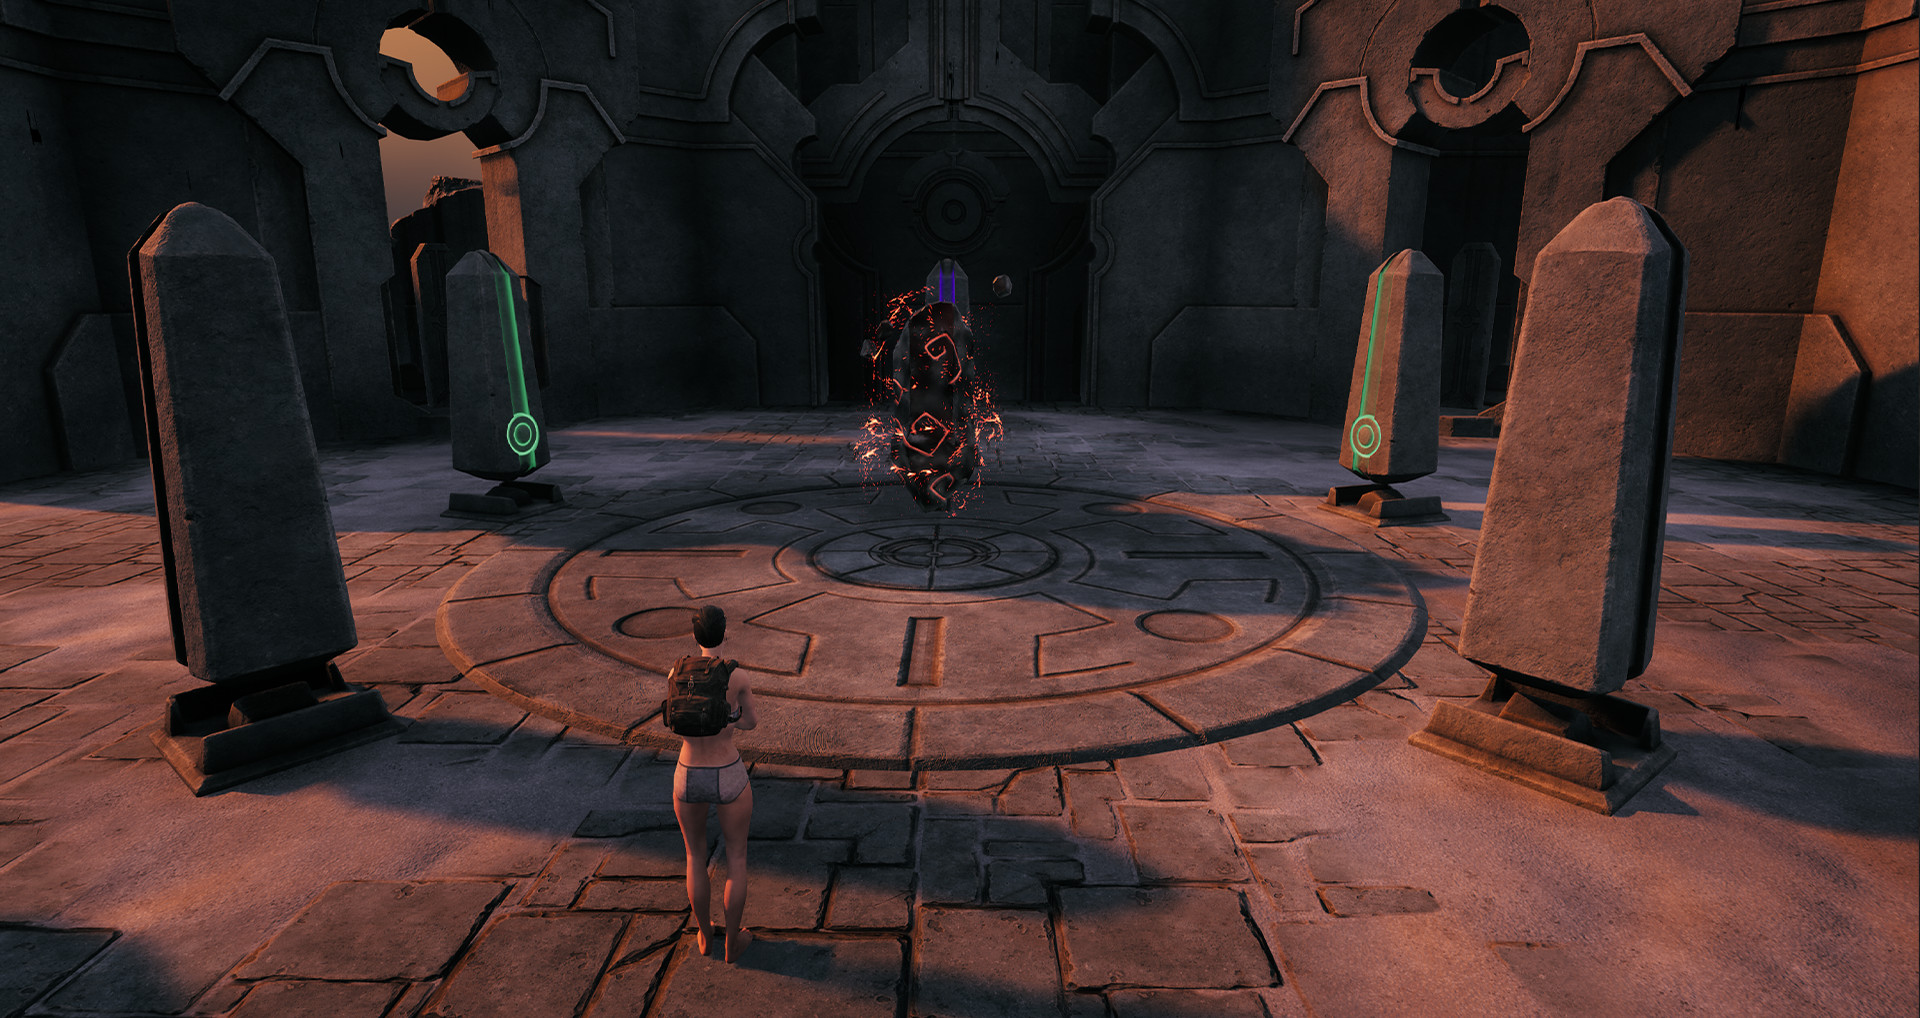 Remnant character in minimal clothing standing in front of 4 obelisks and a fiery rock